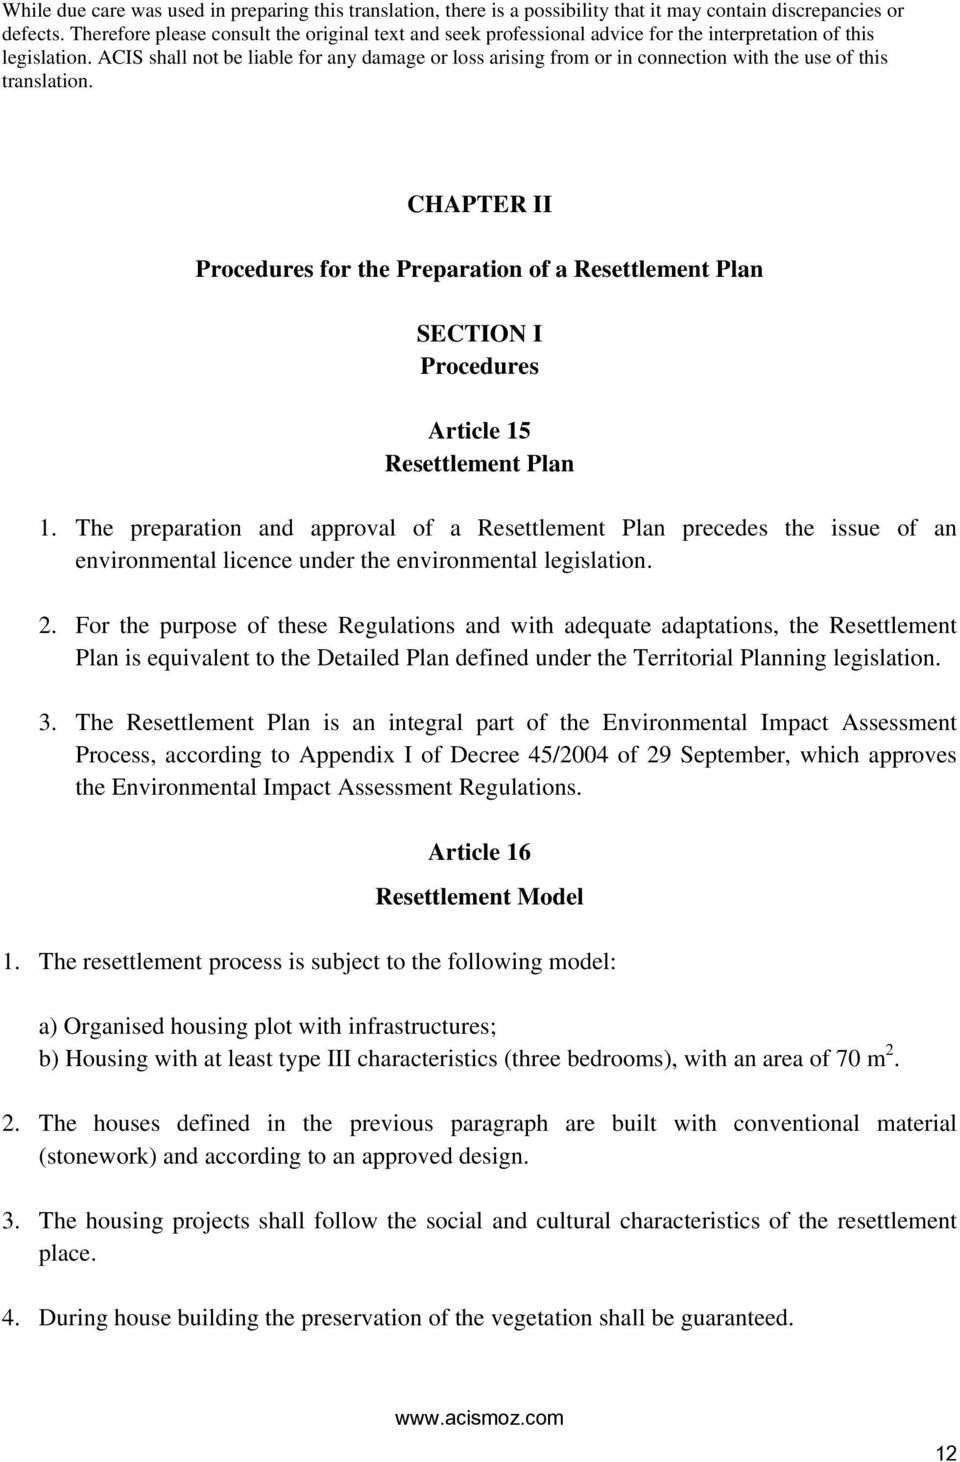 For the purpose of these Regulations and with adequate adaptations, the Resettlement Plan is equivalent to the Detailed Plan defined under the Territorial Planning legislation. 3.